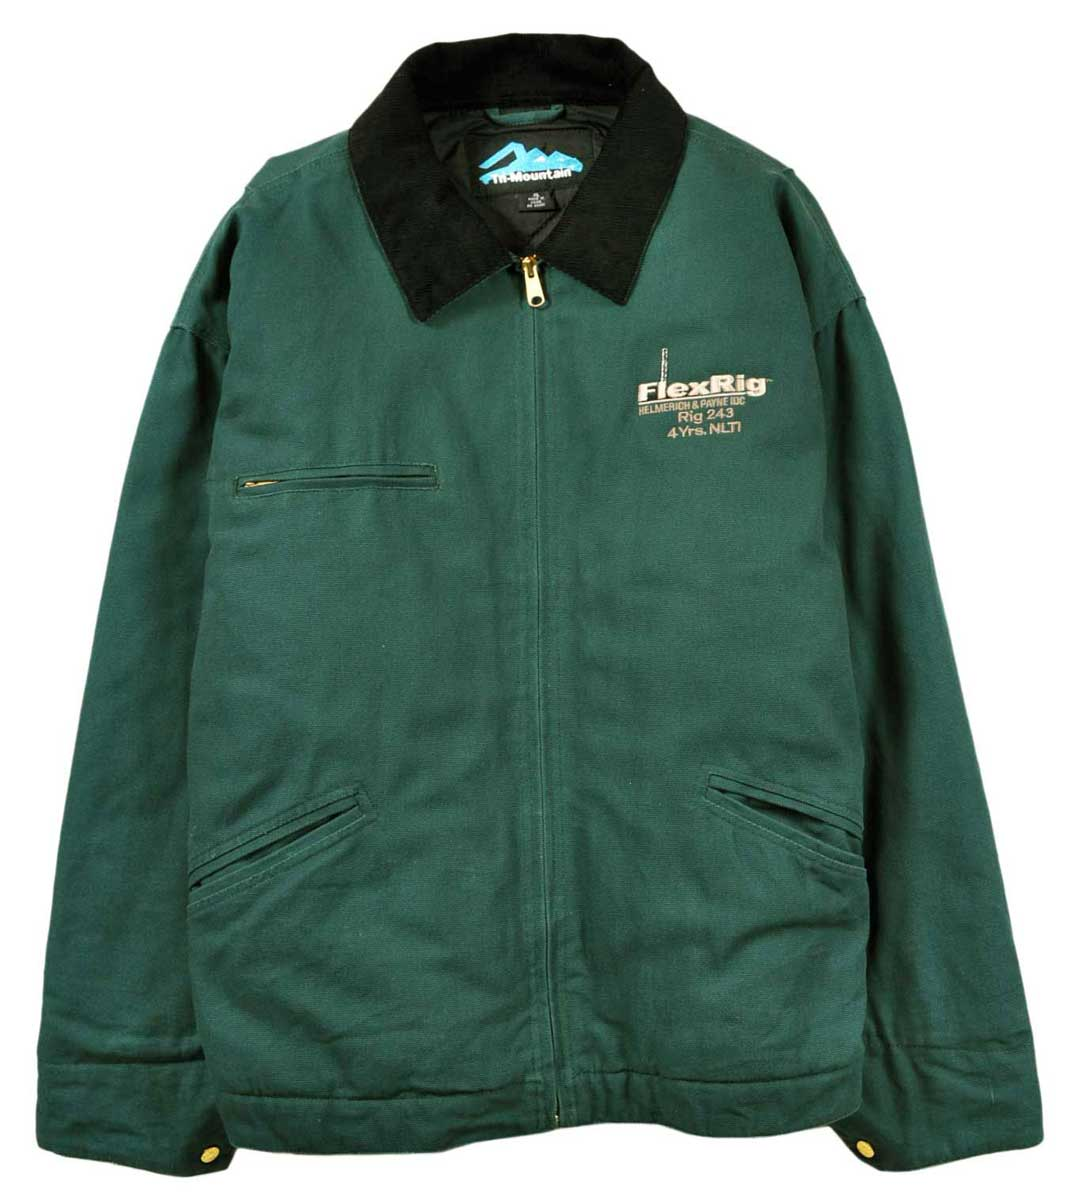 Entering Tri-Mountain company thing quilting liner cotton duck work jacket  green embroidery men XL▼